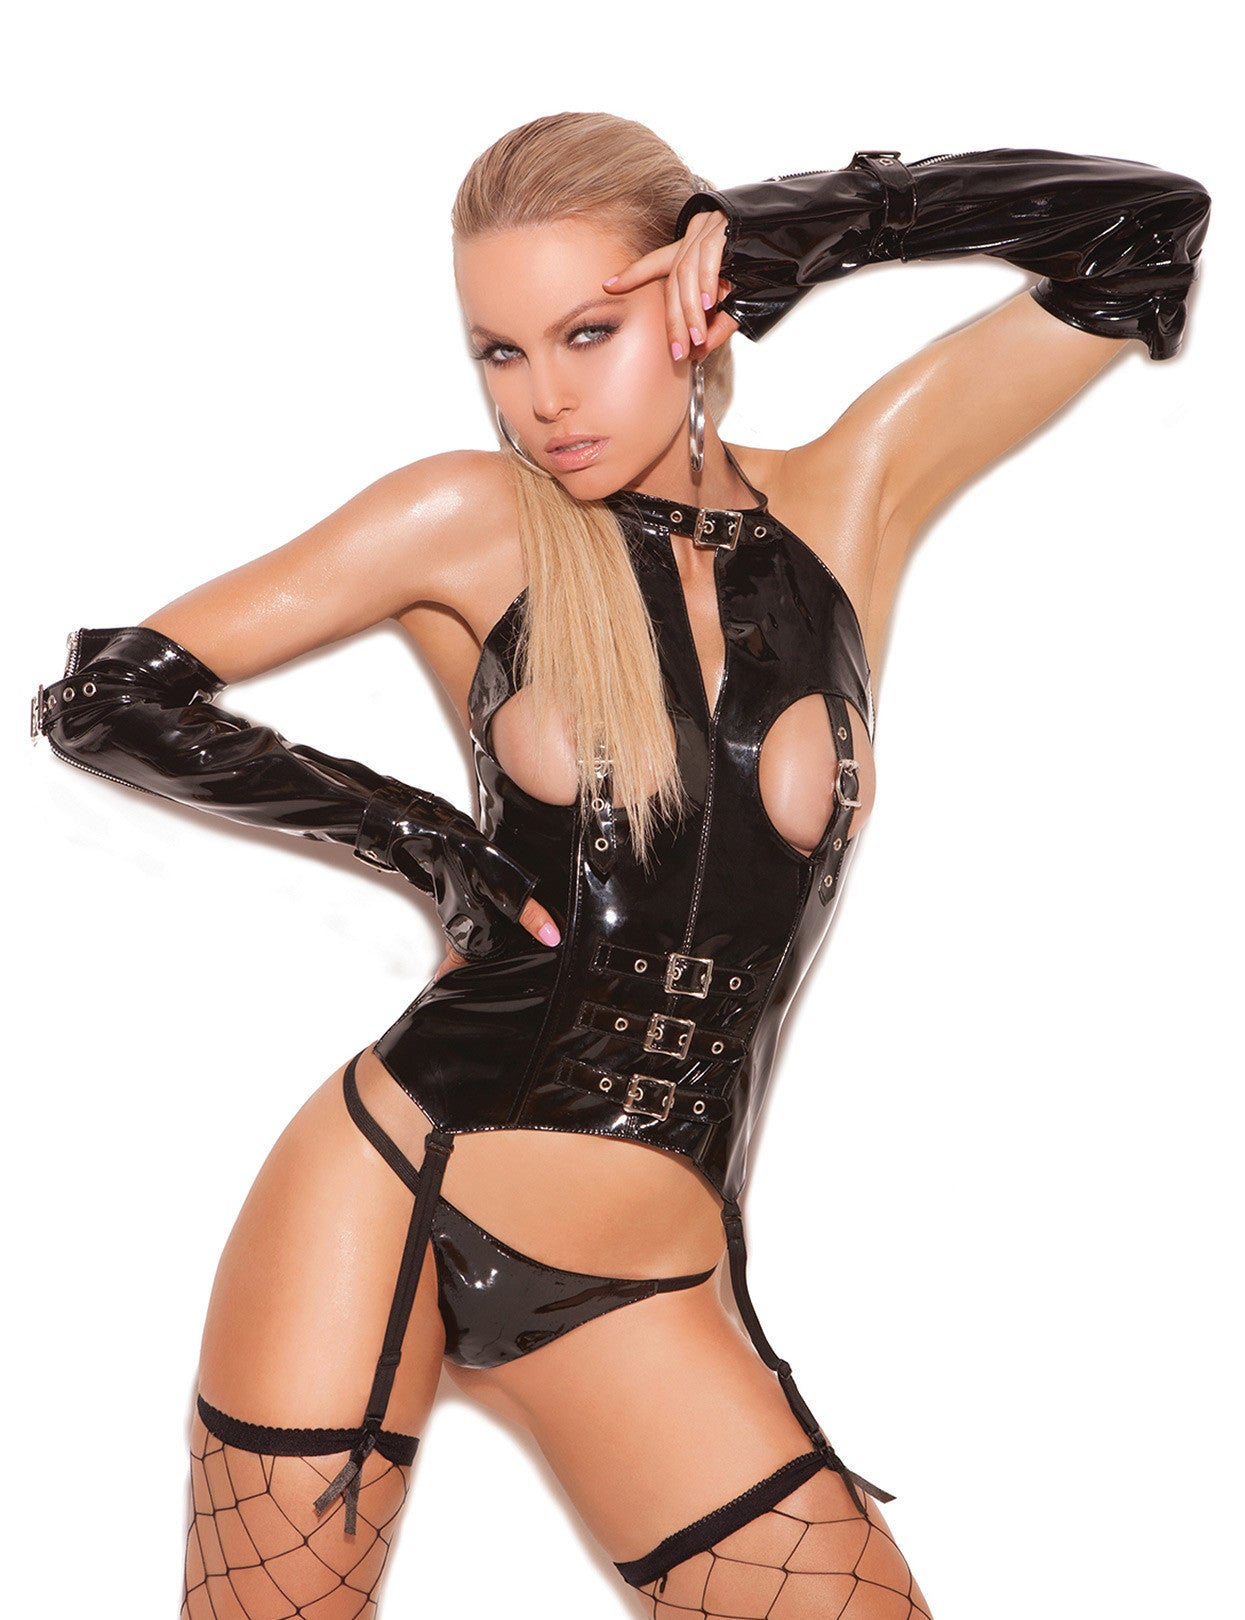 Vinyl Cupless Bustier with Buckles - just damn sexy  - 1